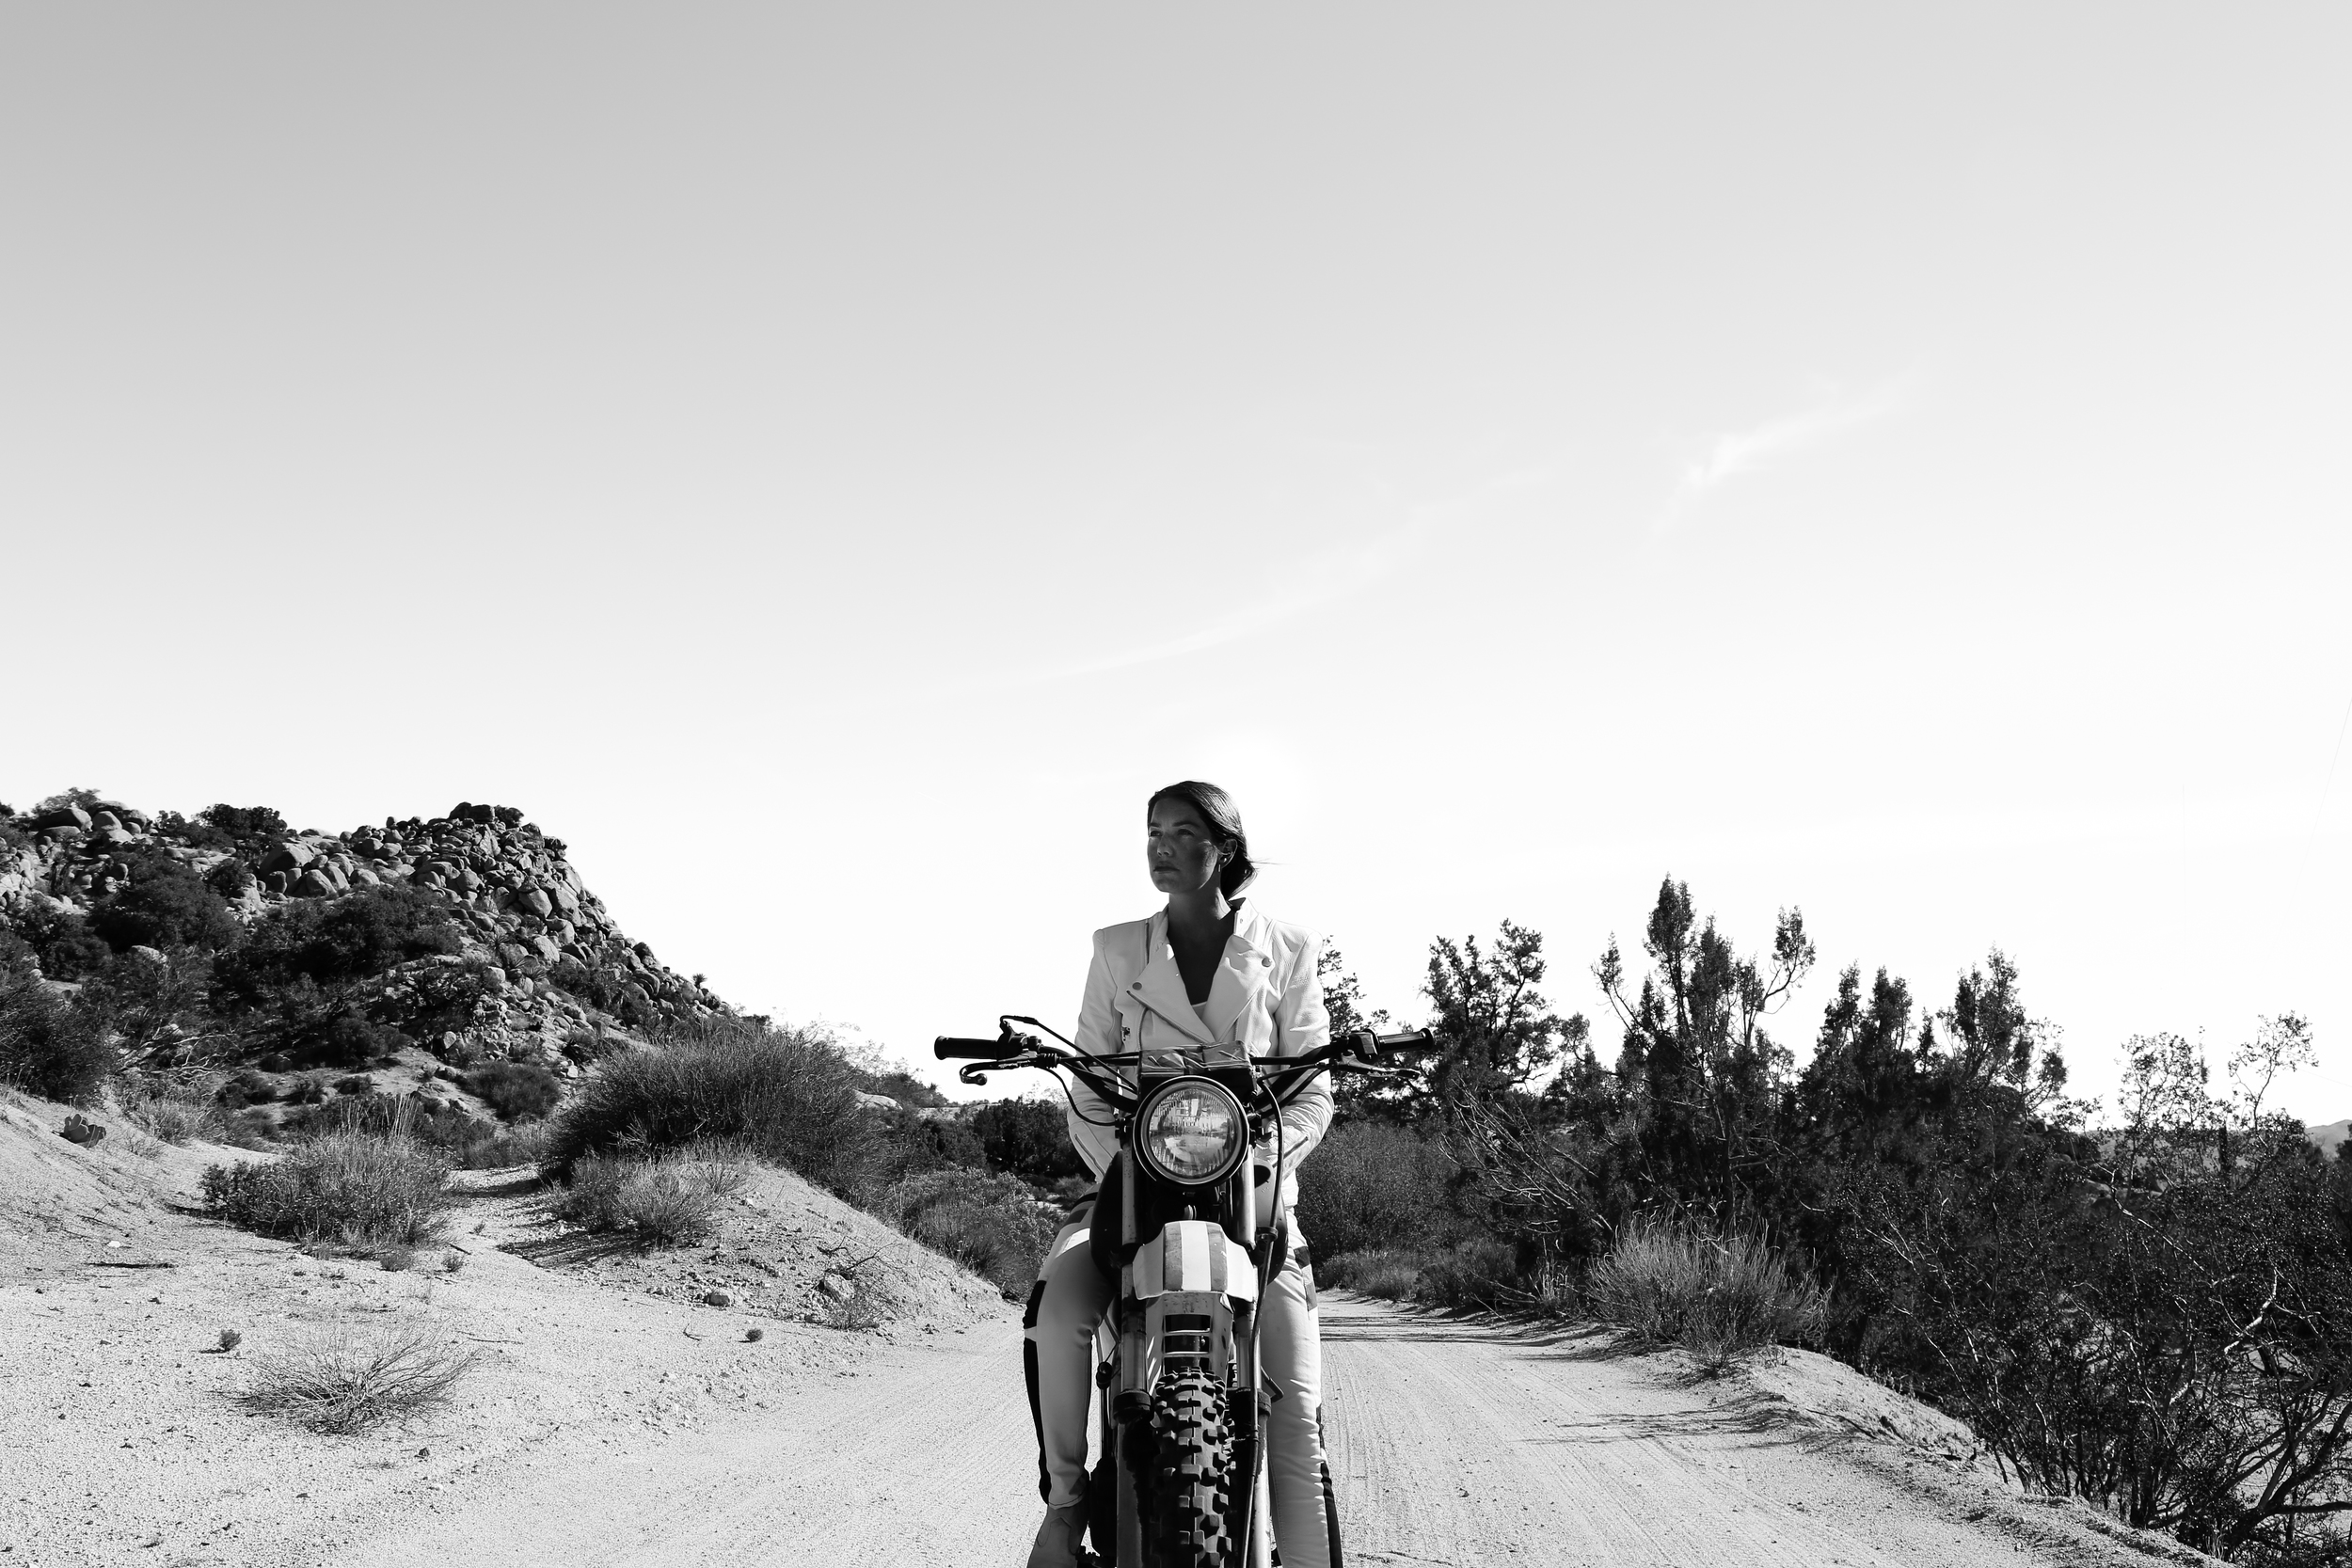 Couldn't be more stoked to announce that I am working with  BOOKER   this month to create awareness of their new line. The company is founded by an amazing NYC female motorcyclist named Jameelah based on bringing together style and function. Moto Babes go get one of their amazing jackets and ride safe. Also it's the weekend, so get out there and  #shred  !!! Follow  @bookernyc  for updates, releases and giveaways!!!!!  #bookernyc    #booker